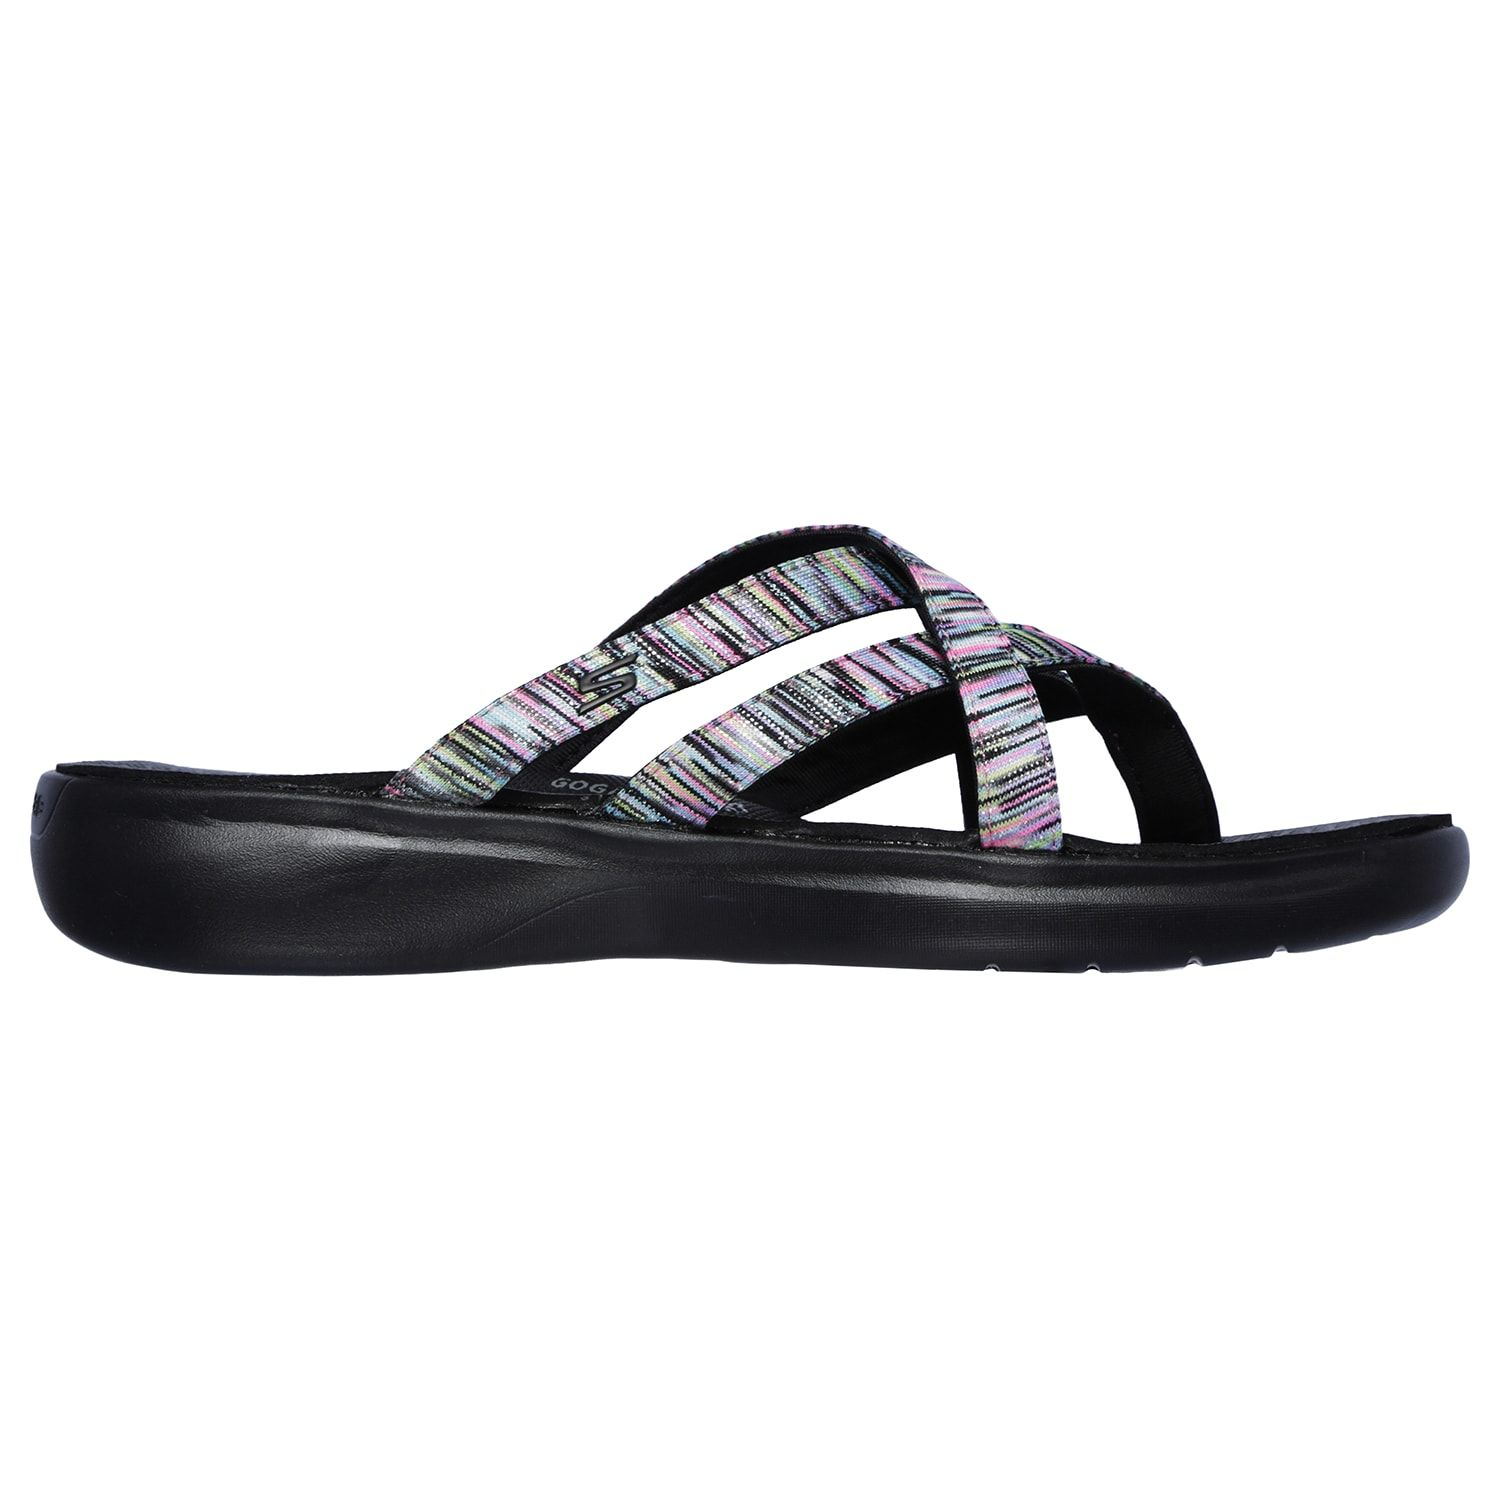 Skechers On The Go Luxe Women S Sandals Womens Sandals Skechers Skechers On The Go